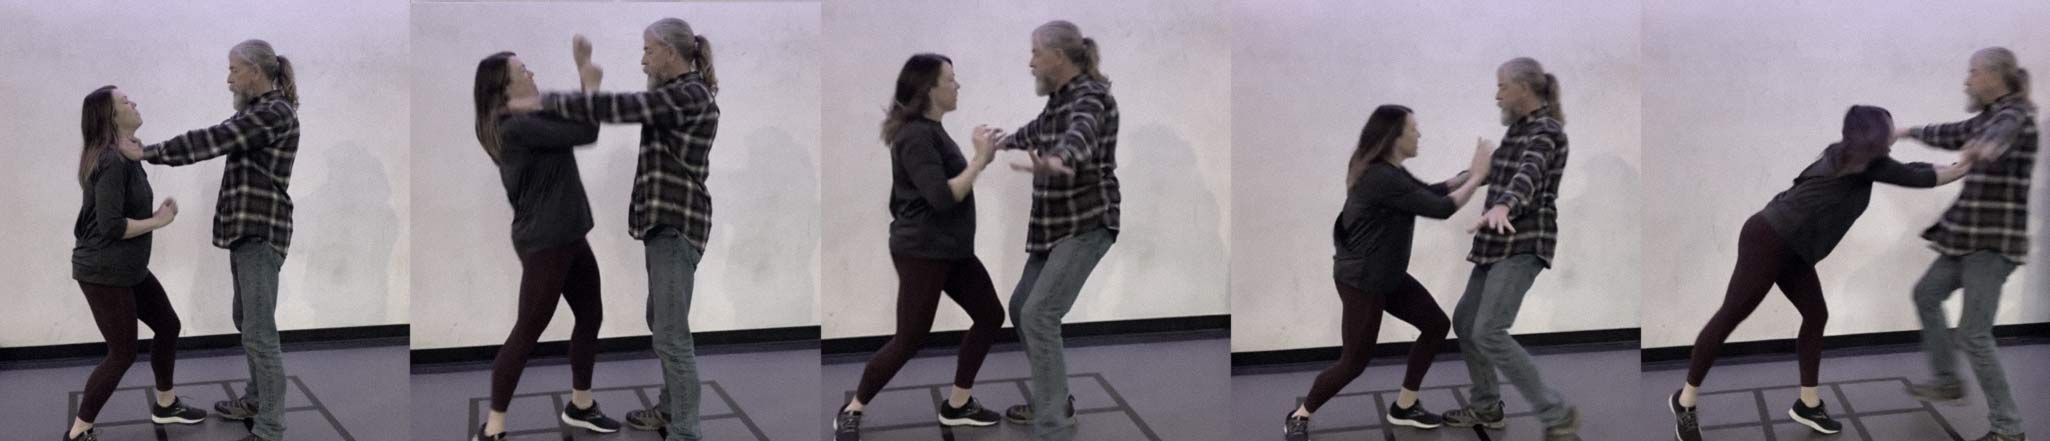 Women's Self Defense Class at ZUM Fitness teaches you to protect yourself with martial arts and information.